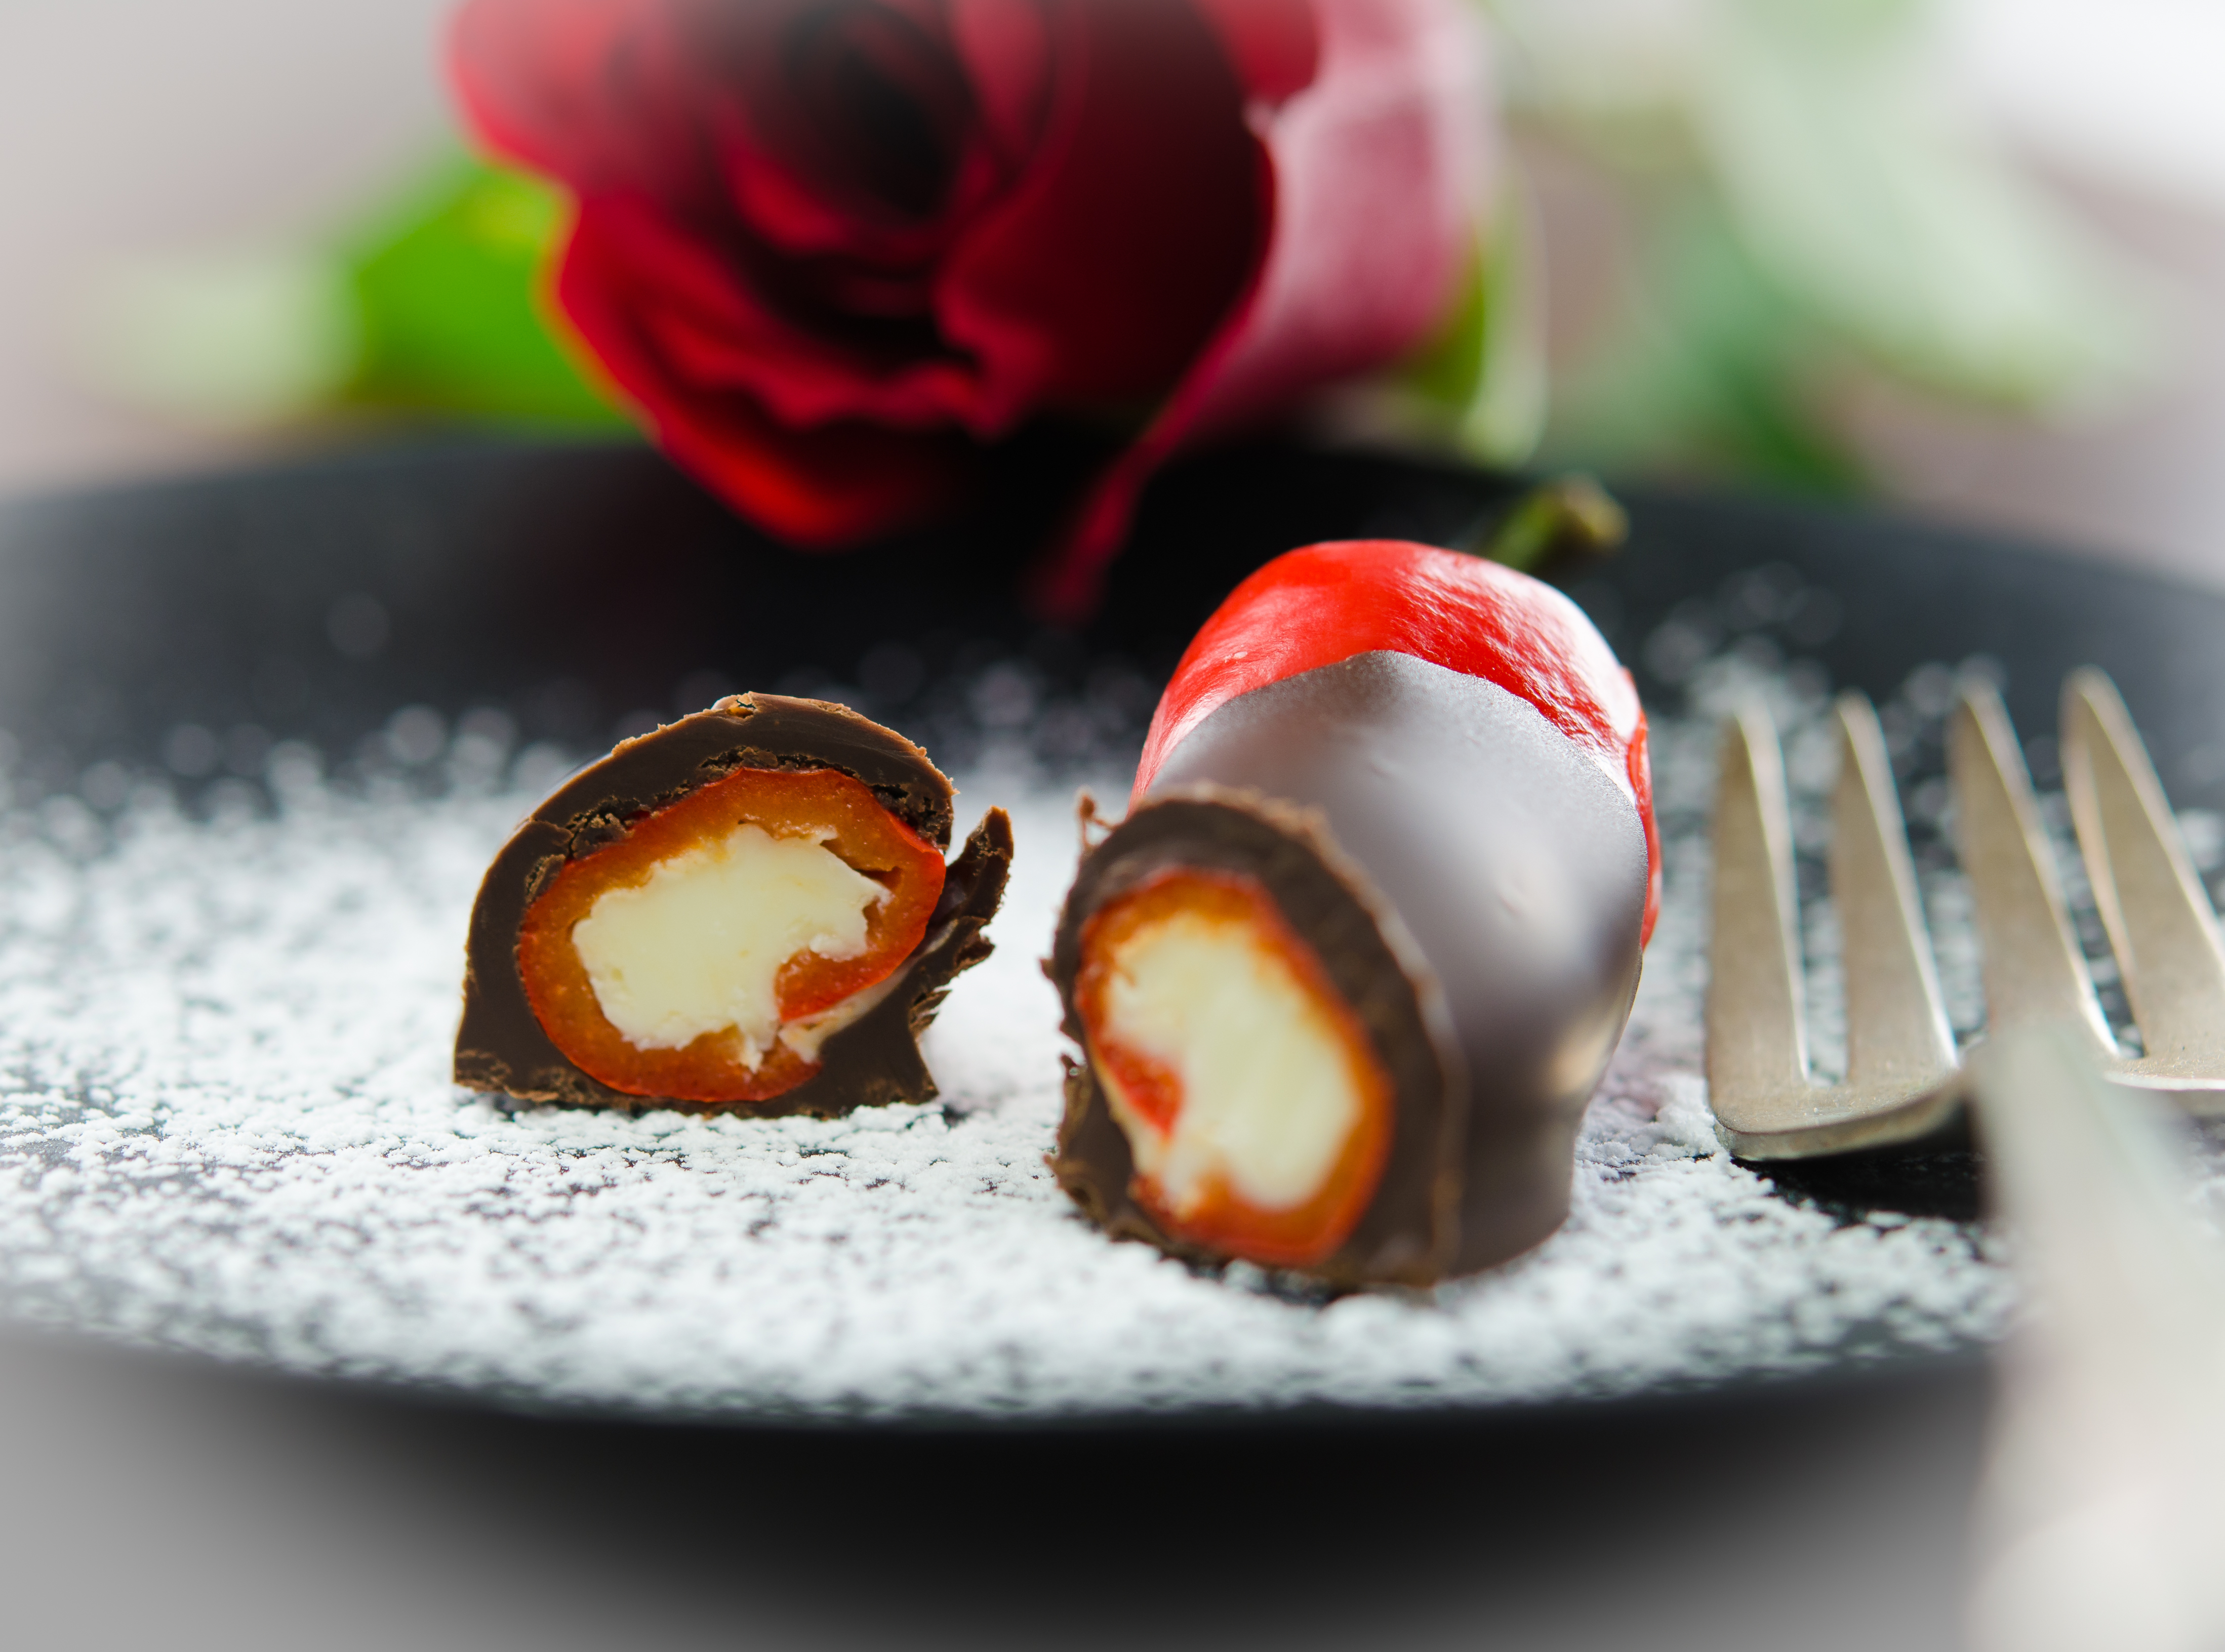 Chocolate Filled Vodka Chili Chocolates: A Hot Treat for ...